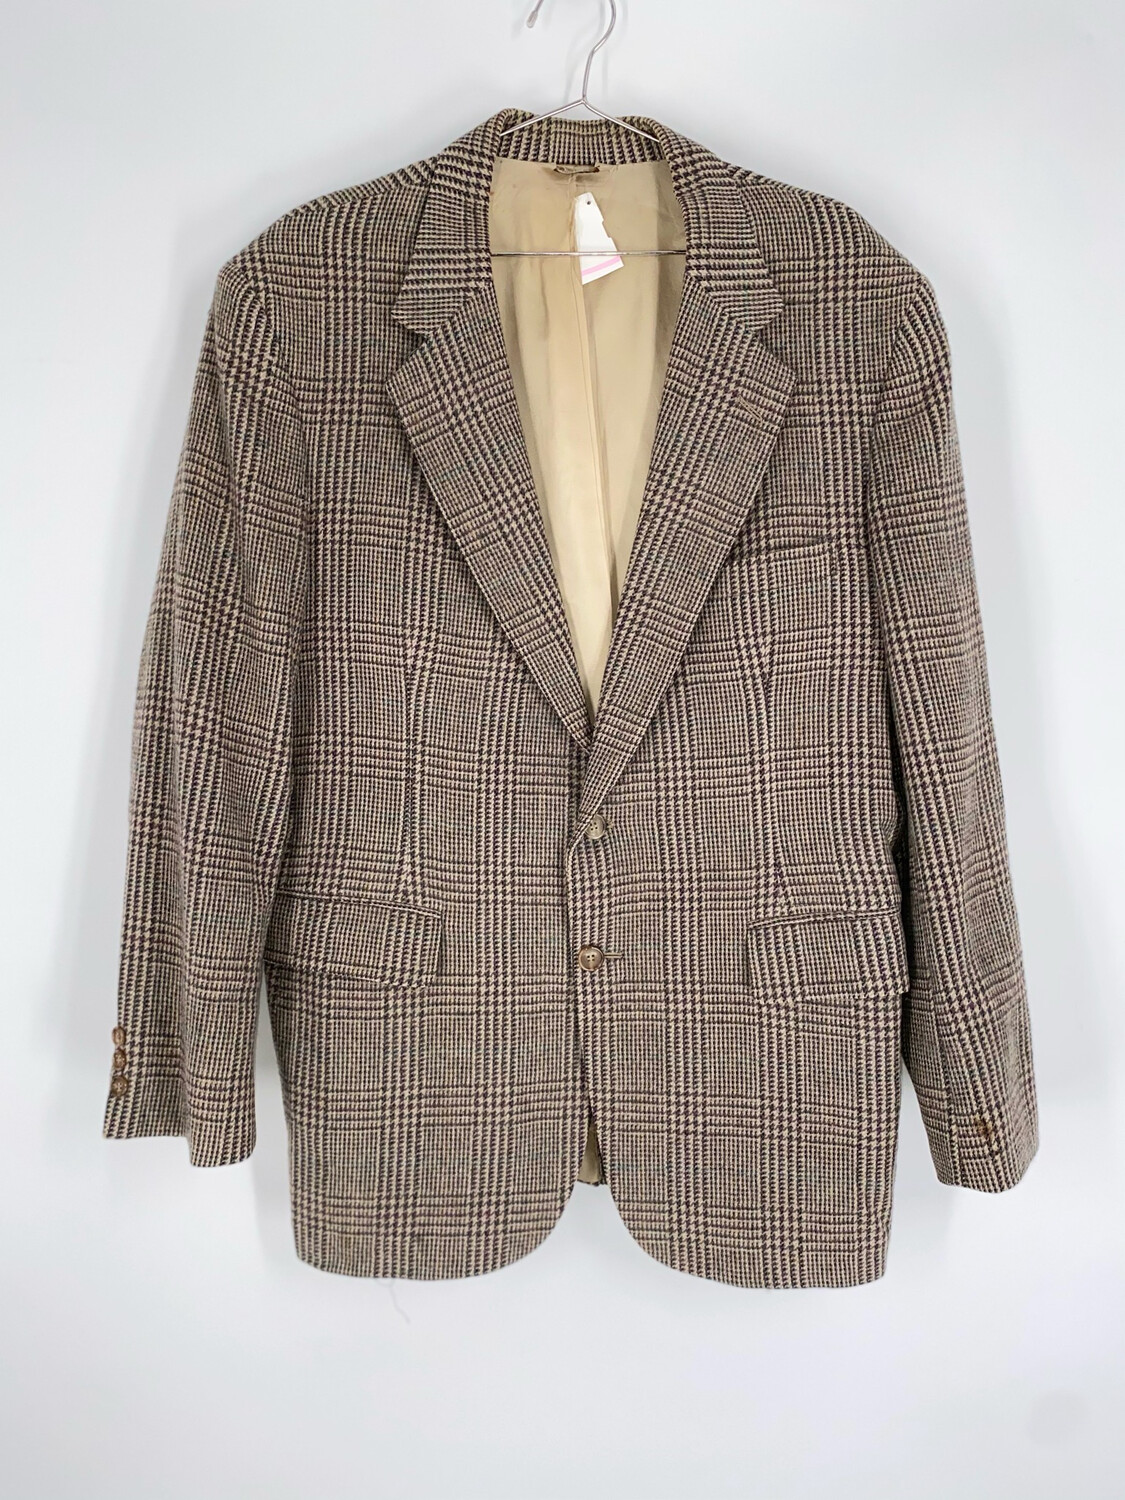 Kennedy's Grey And Multicolored Plaid Wool Blazer Size L